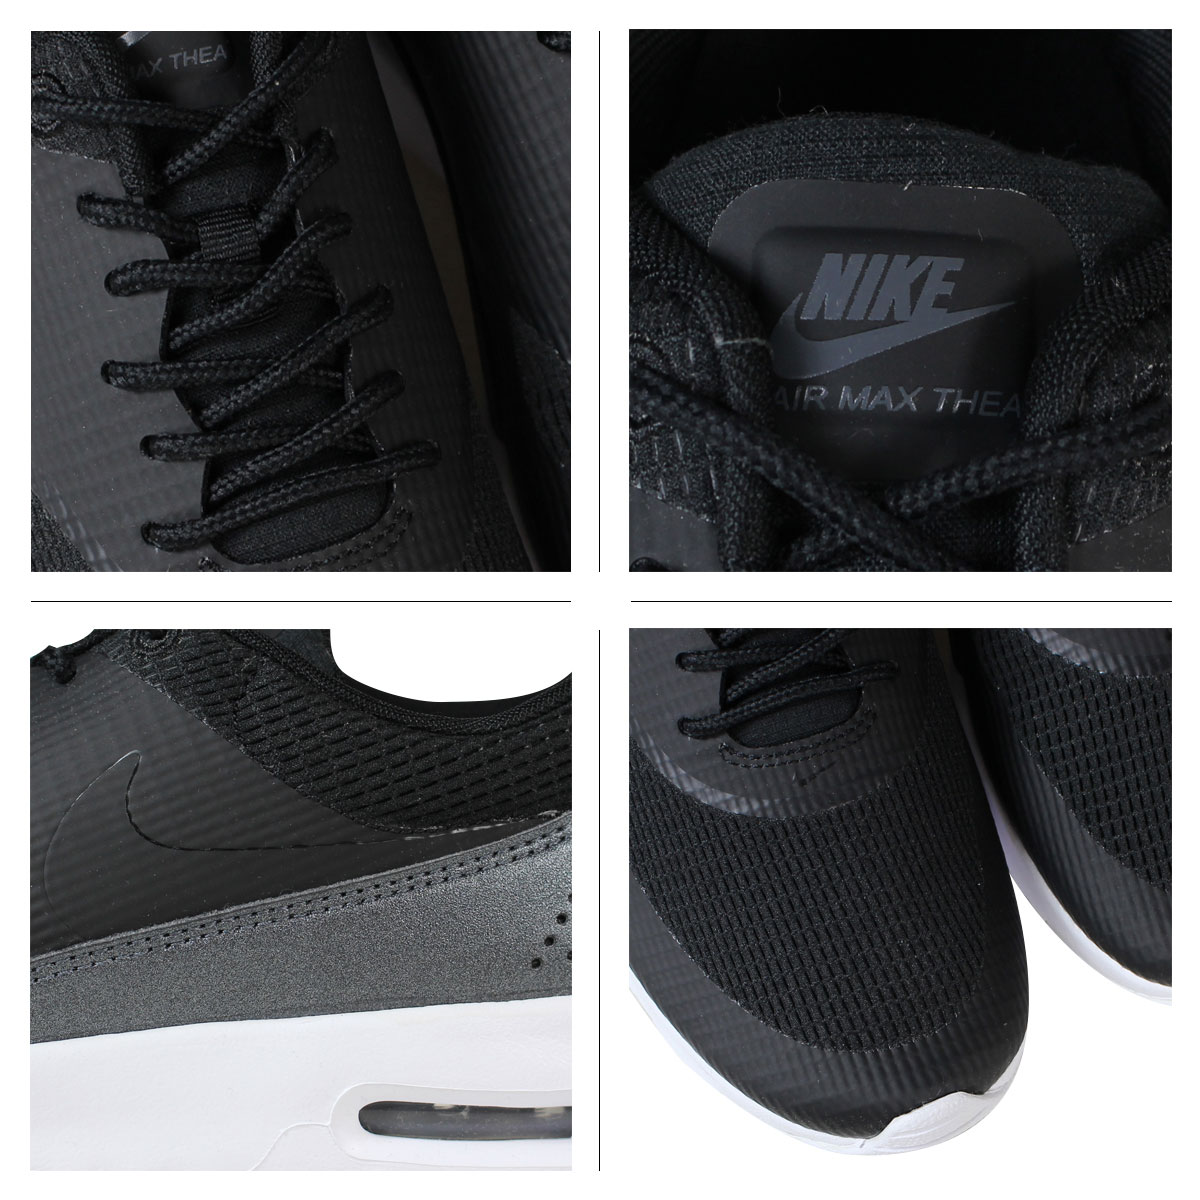 NIKE Kie Ney AMAX sneakers Lady's WMNS AIR MAX THEA TXT Air Max 819,639 004 shoes black